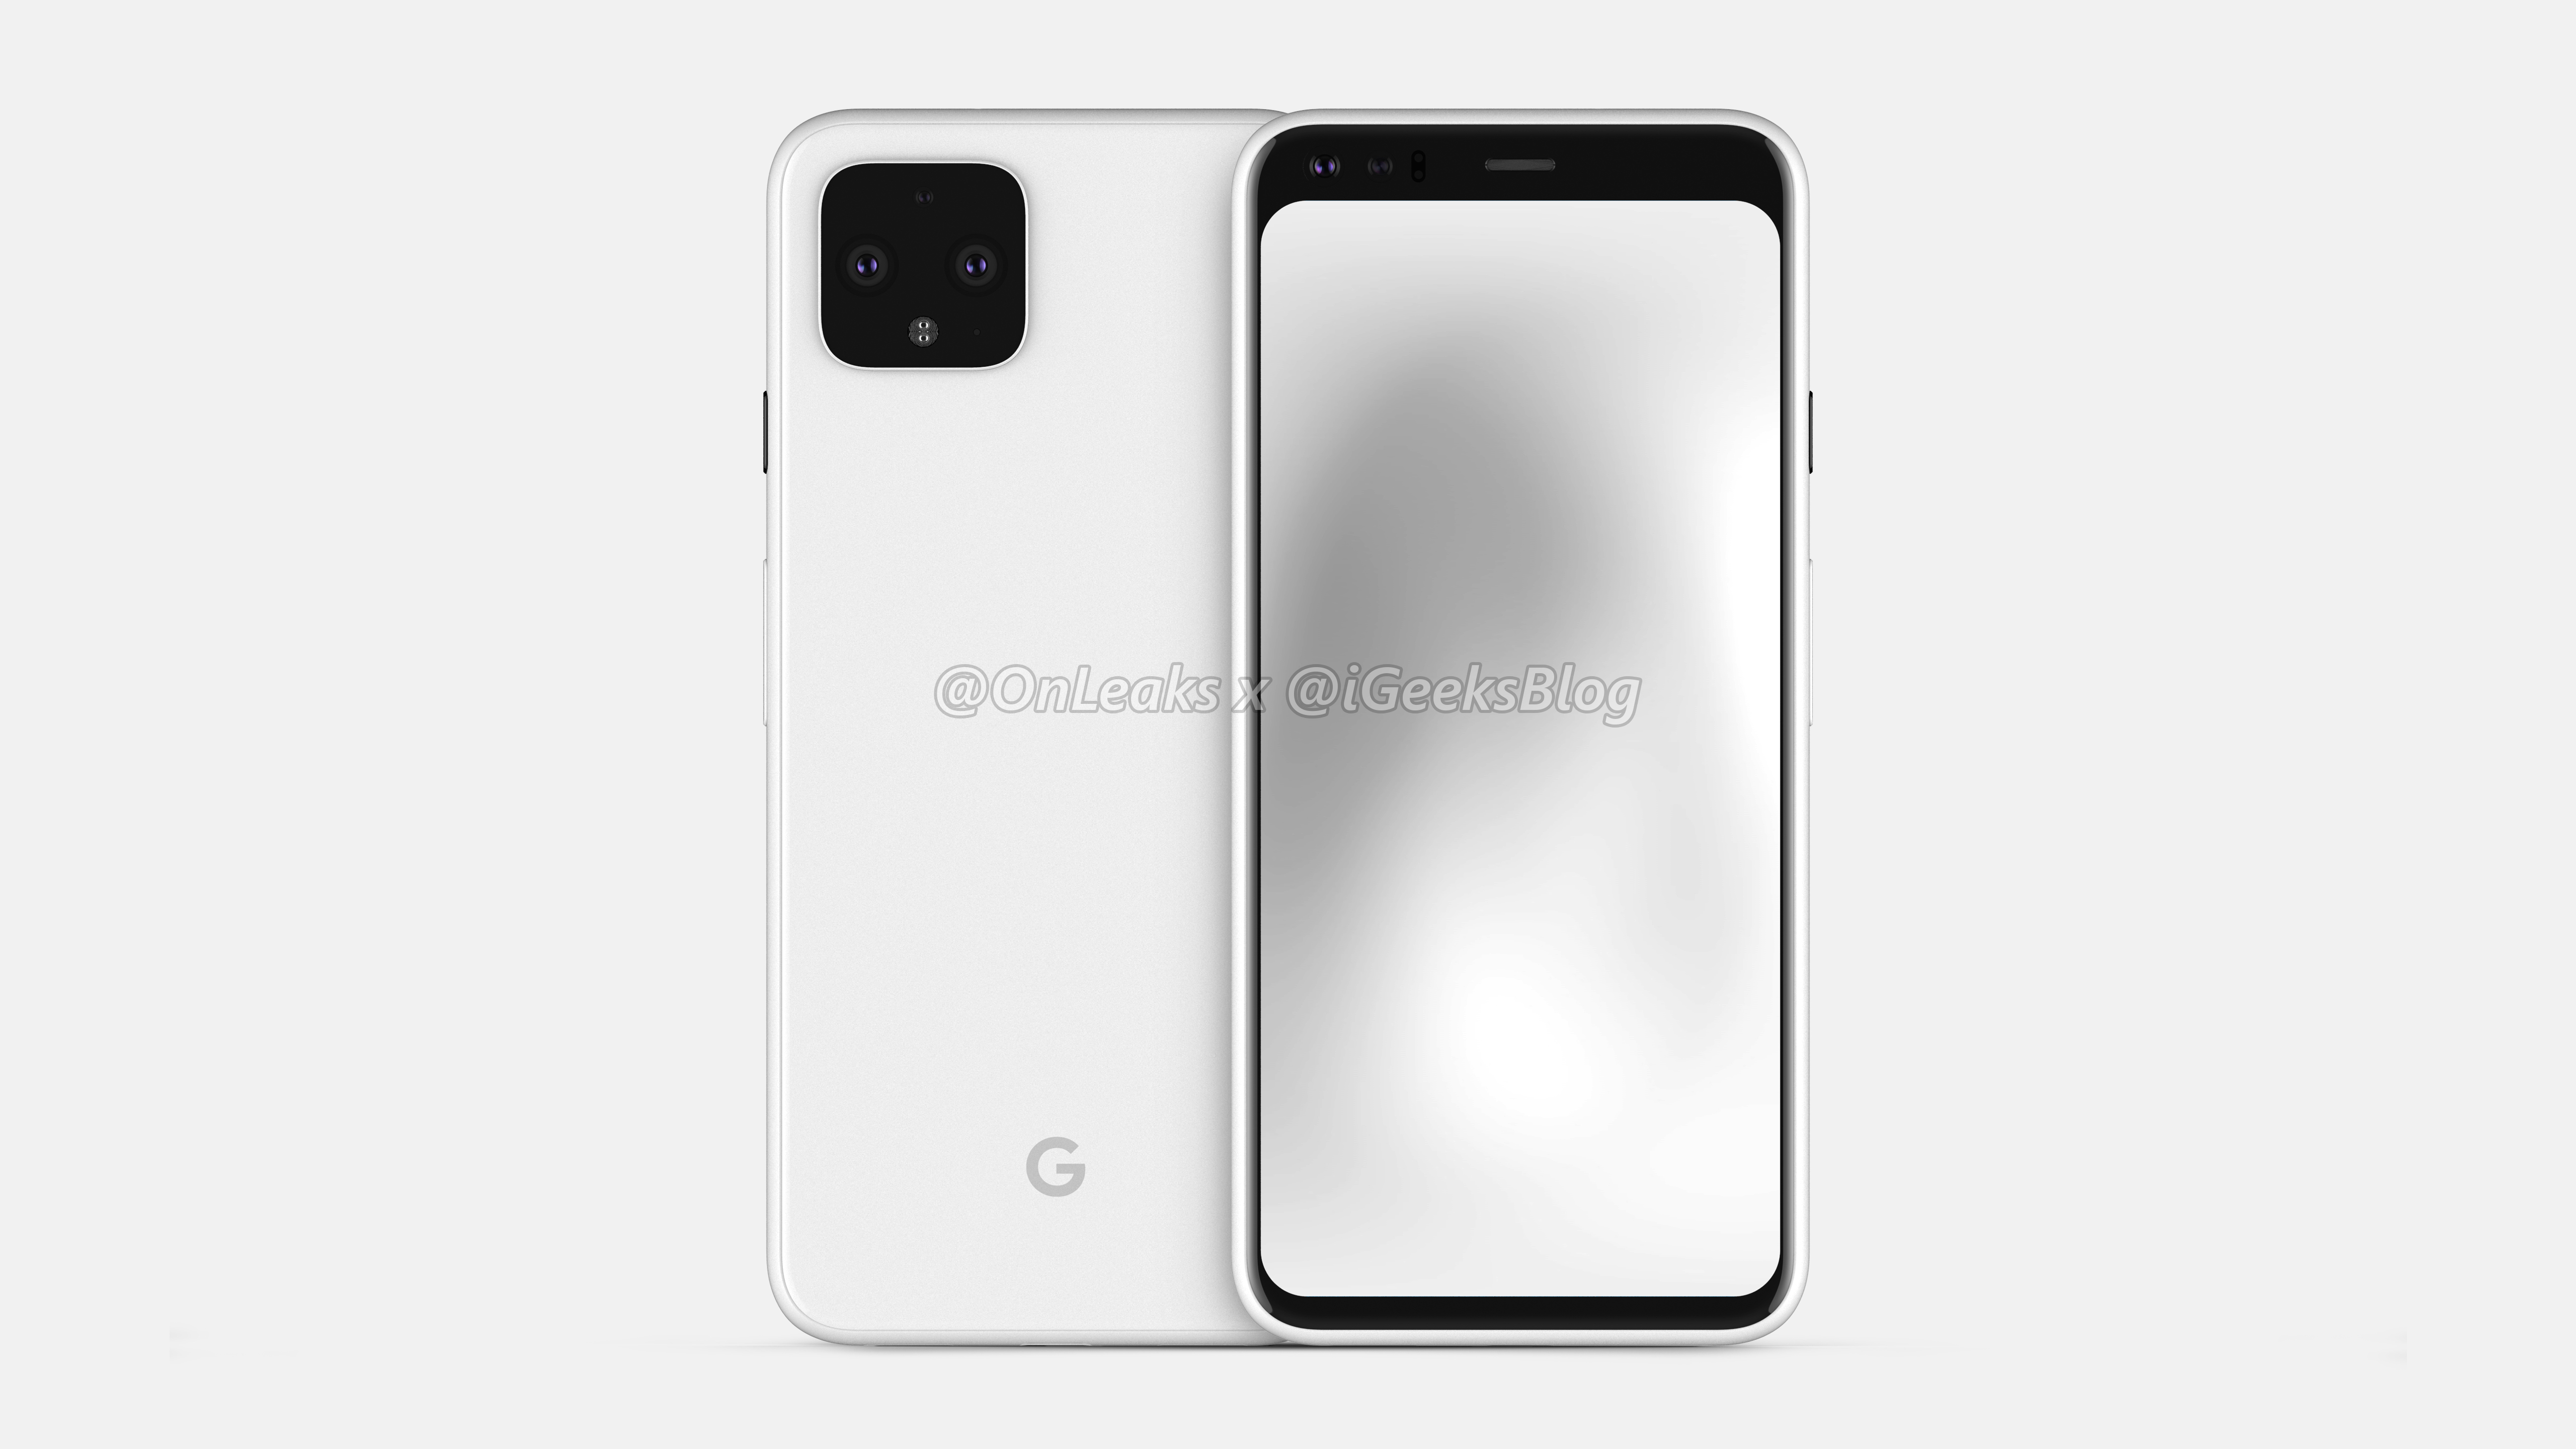 These are the first detailed renders of the small Pixel 4